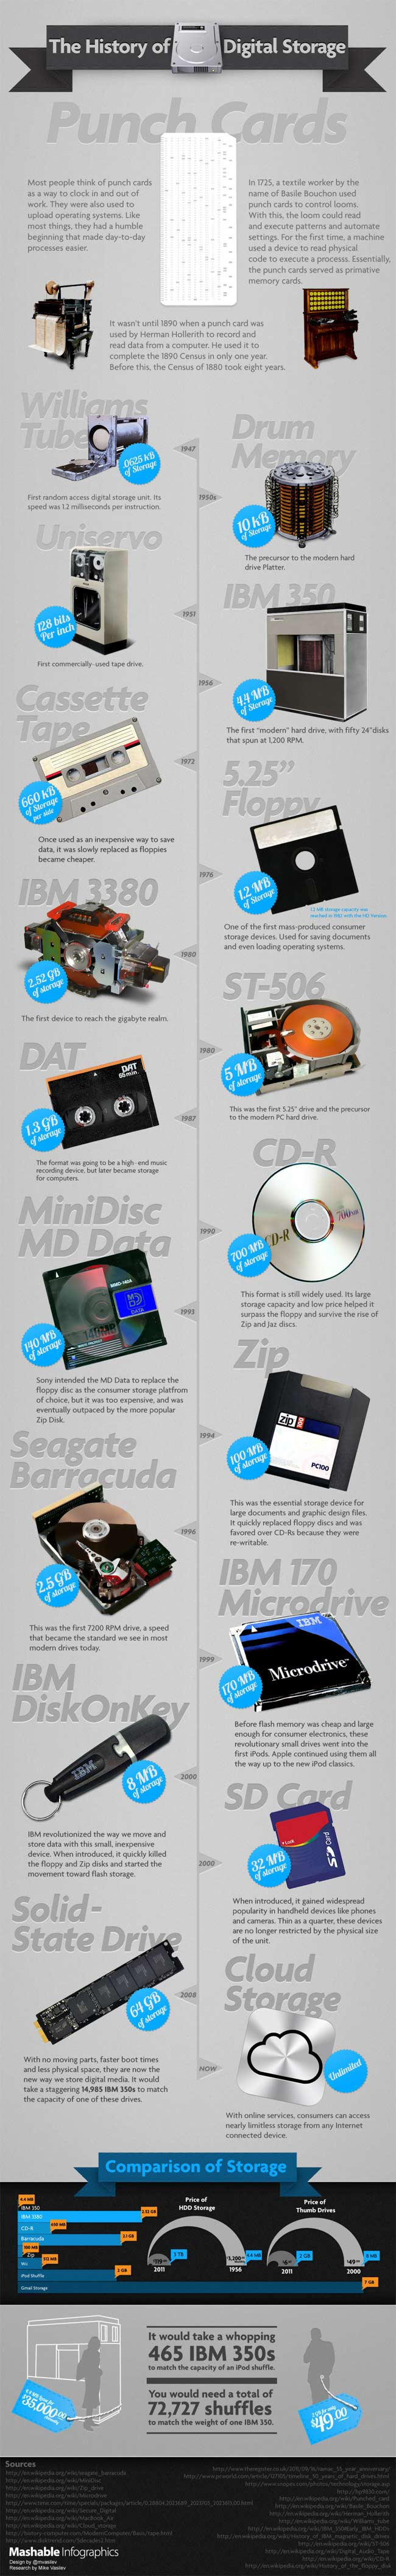 Digital Storage Evolution-Infographic